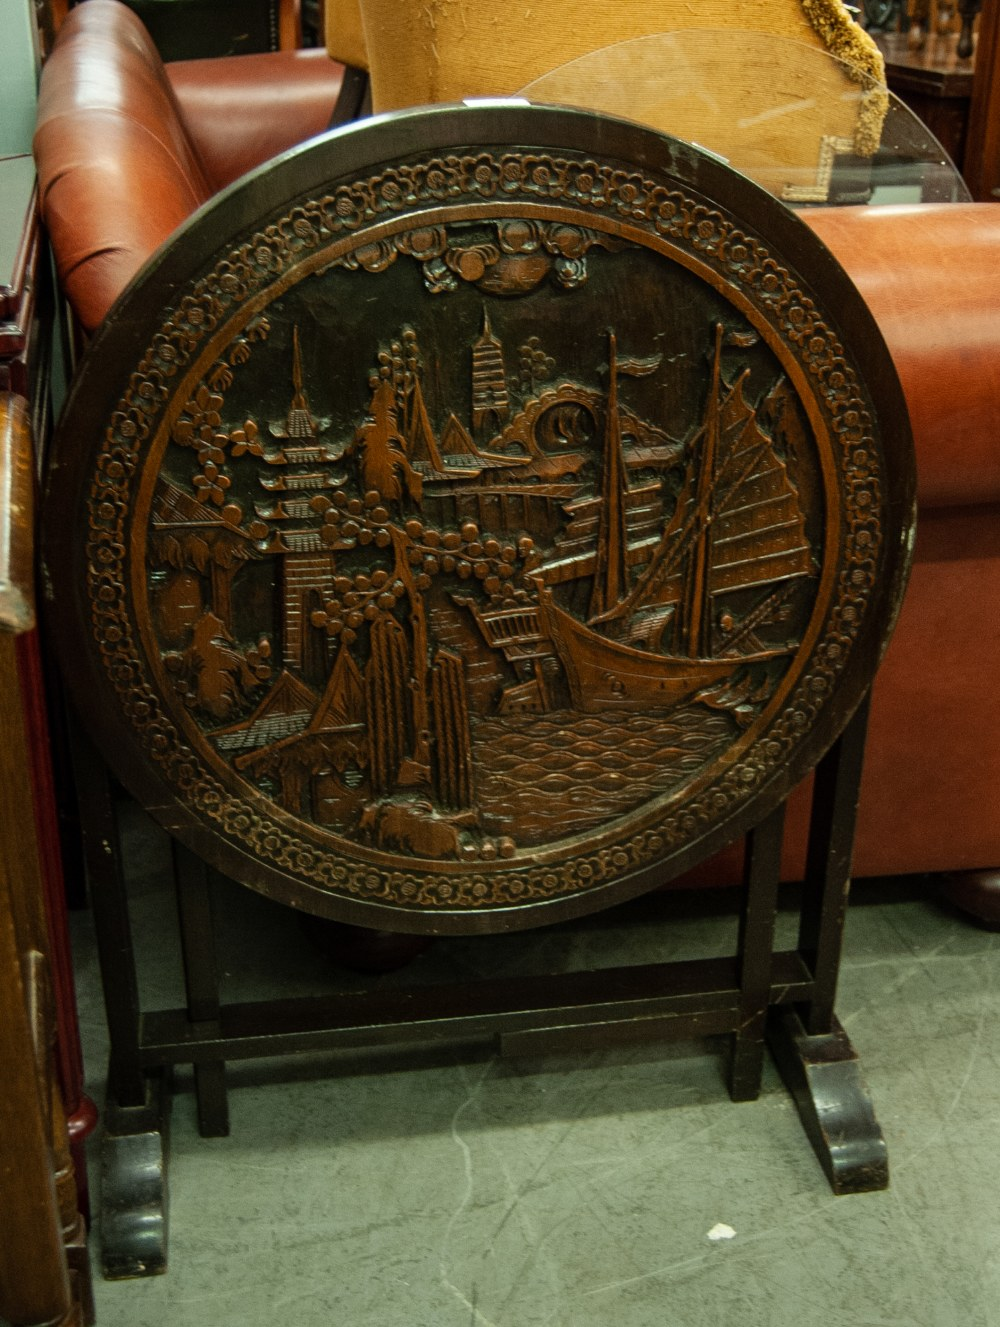 Lot 8 - A MODERN ORIENTAL HIGH RELIEF CIRCULAR TABLE, FEATURING A NAUTICAL SCENE AND FOLIAGE, ON FOUR